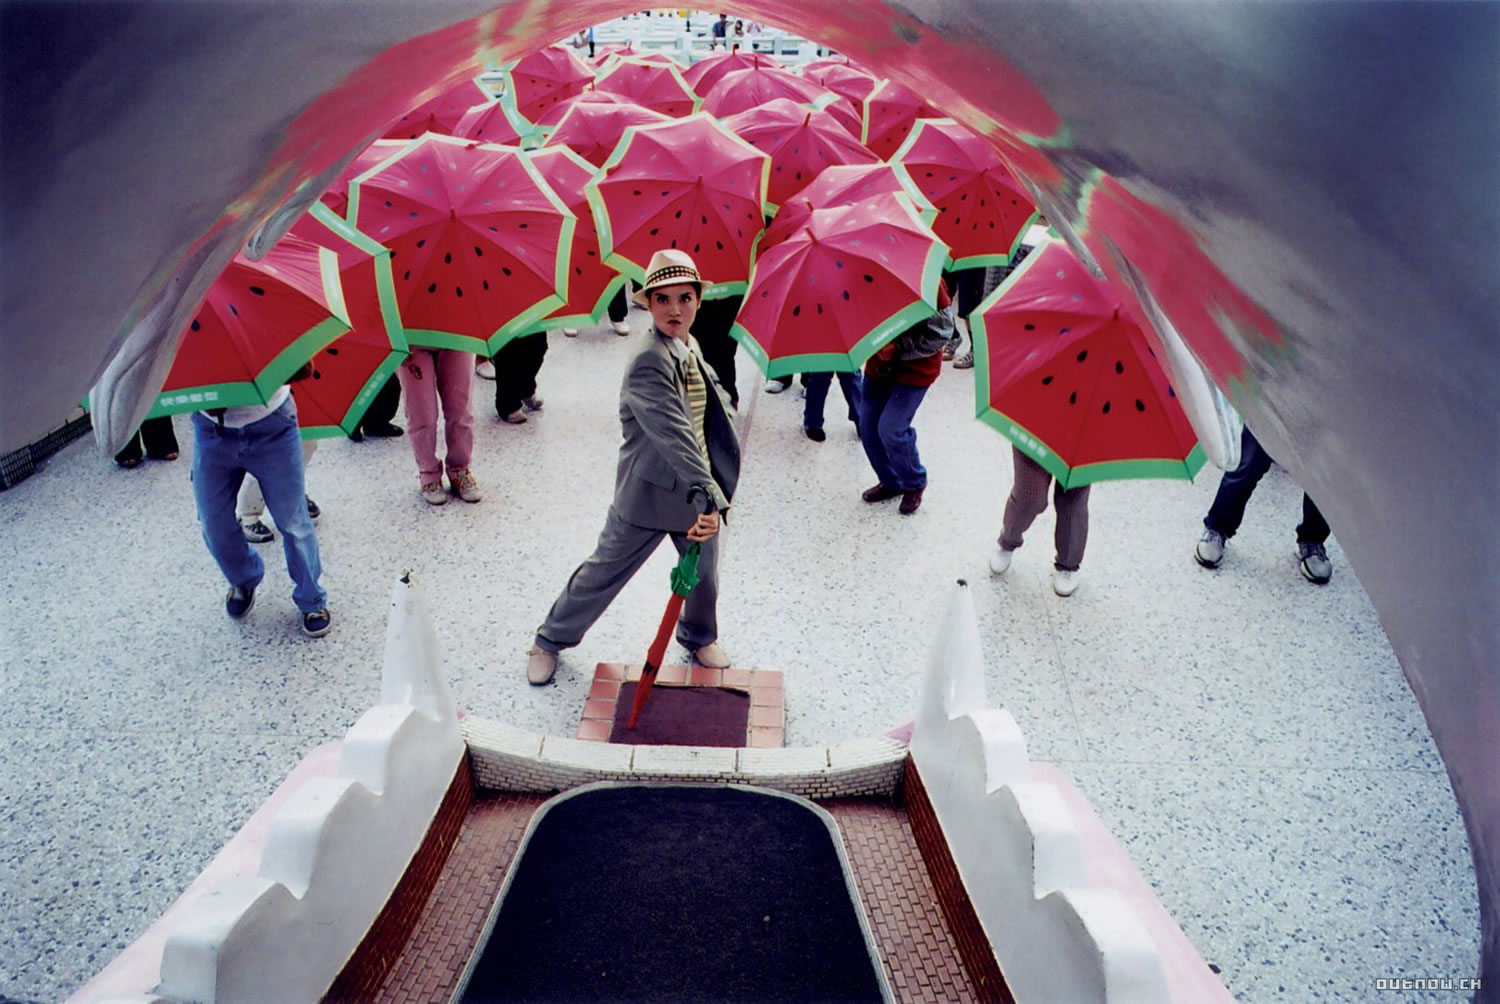 watermelon umbrellas, musical, The Wayward Cloud (Tian bian yi duo yun)